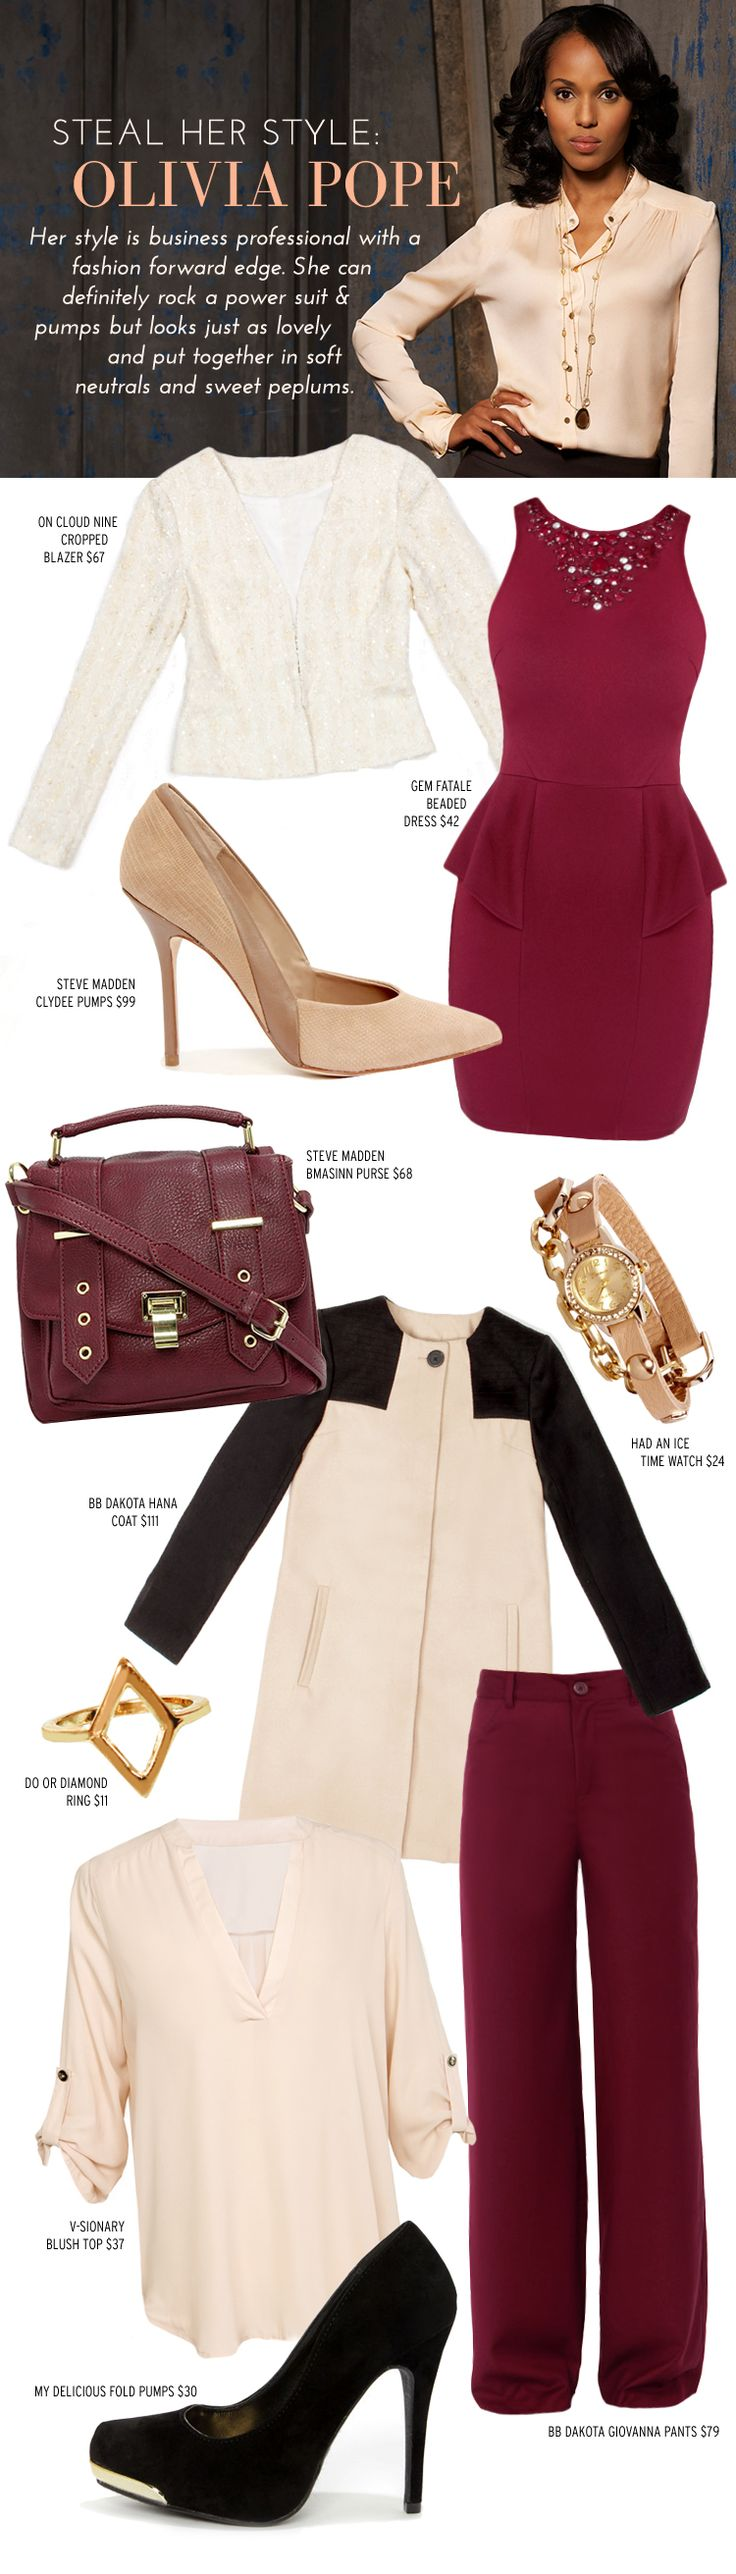 Steal Her Style: Olivia Pope of Scandal at LuLus.com!                                                                                                                                                                                 More